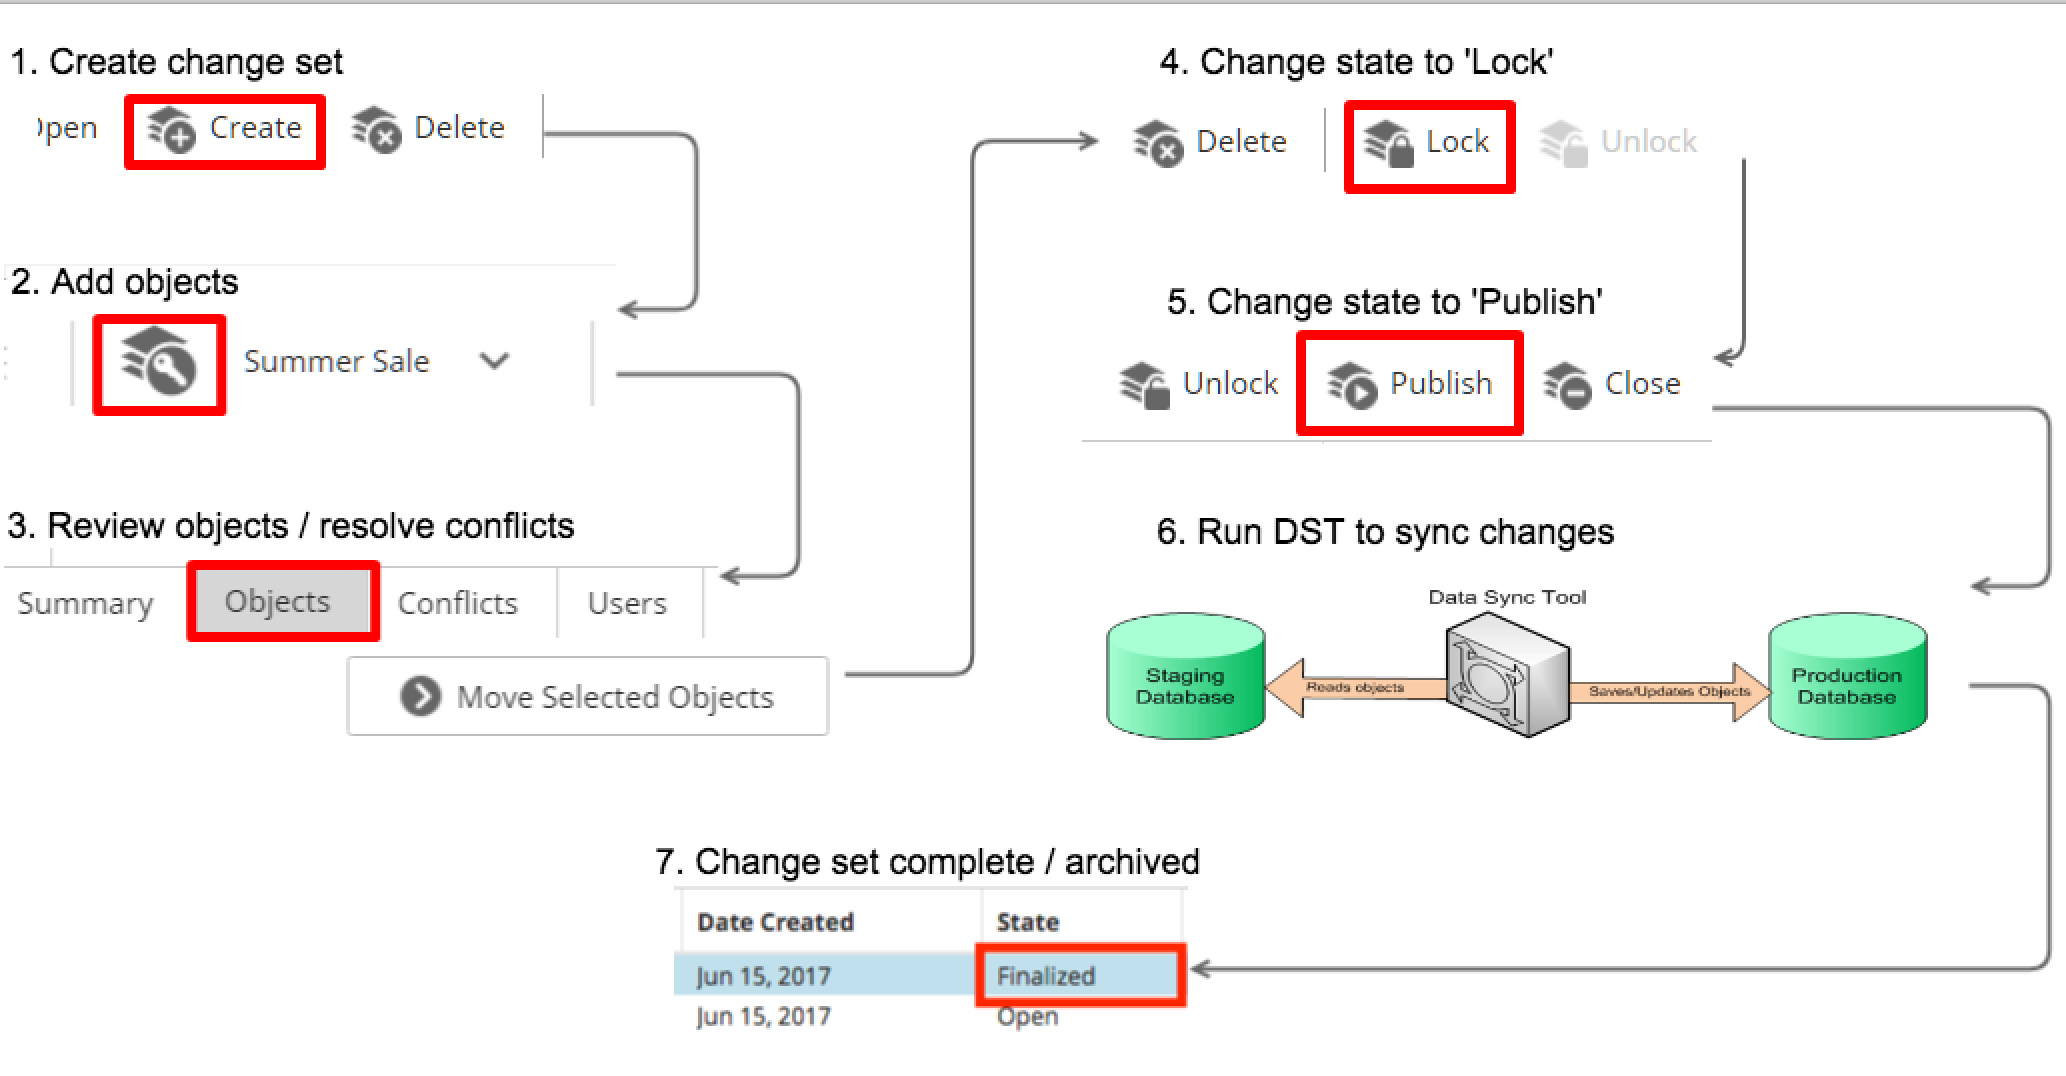 Overview of Data Sync Tool workflow